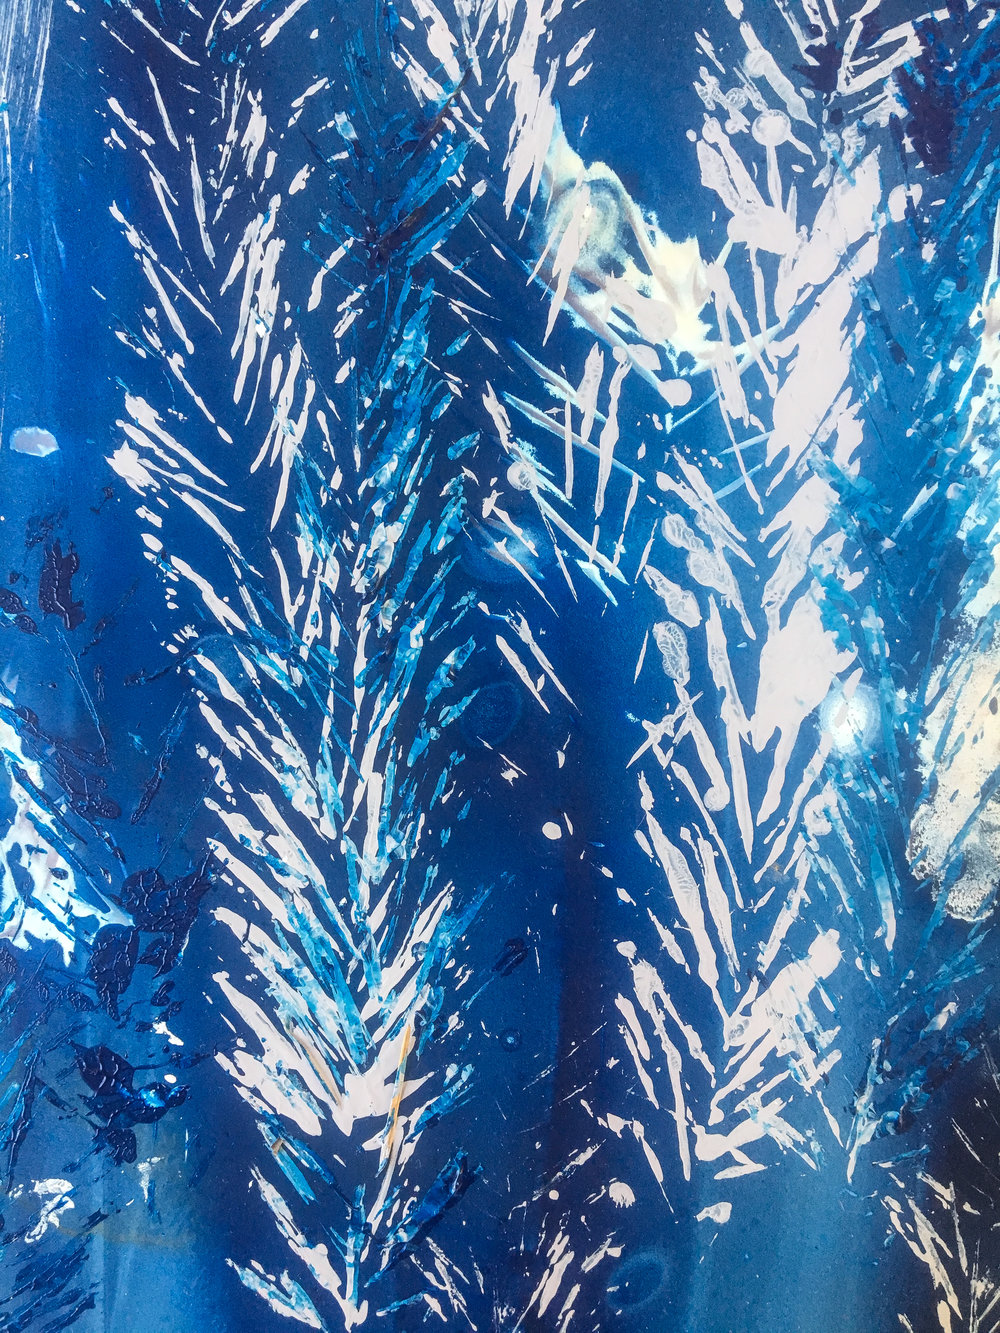 Sunny December Cyanotypes || Rachel Loewens Fine Art